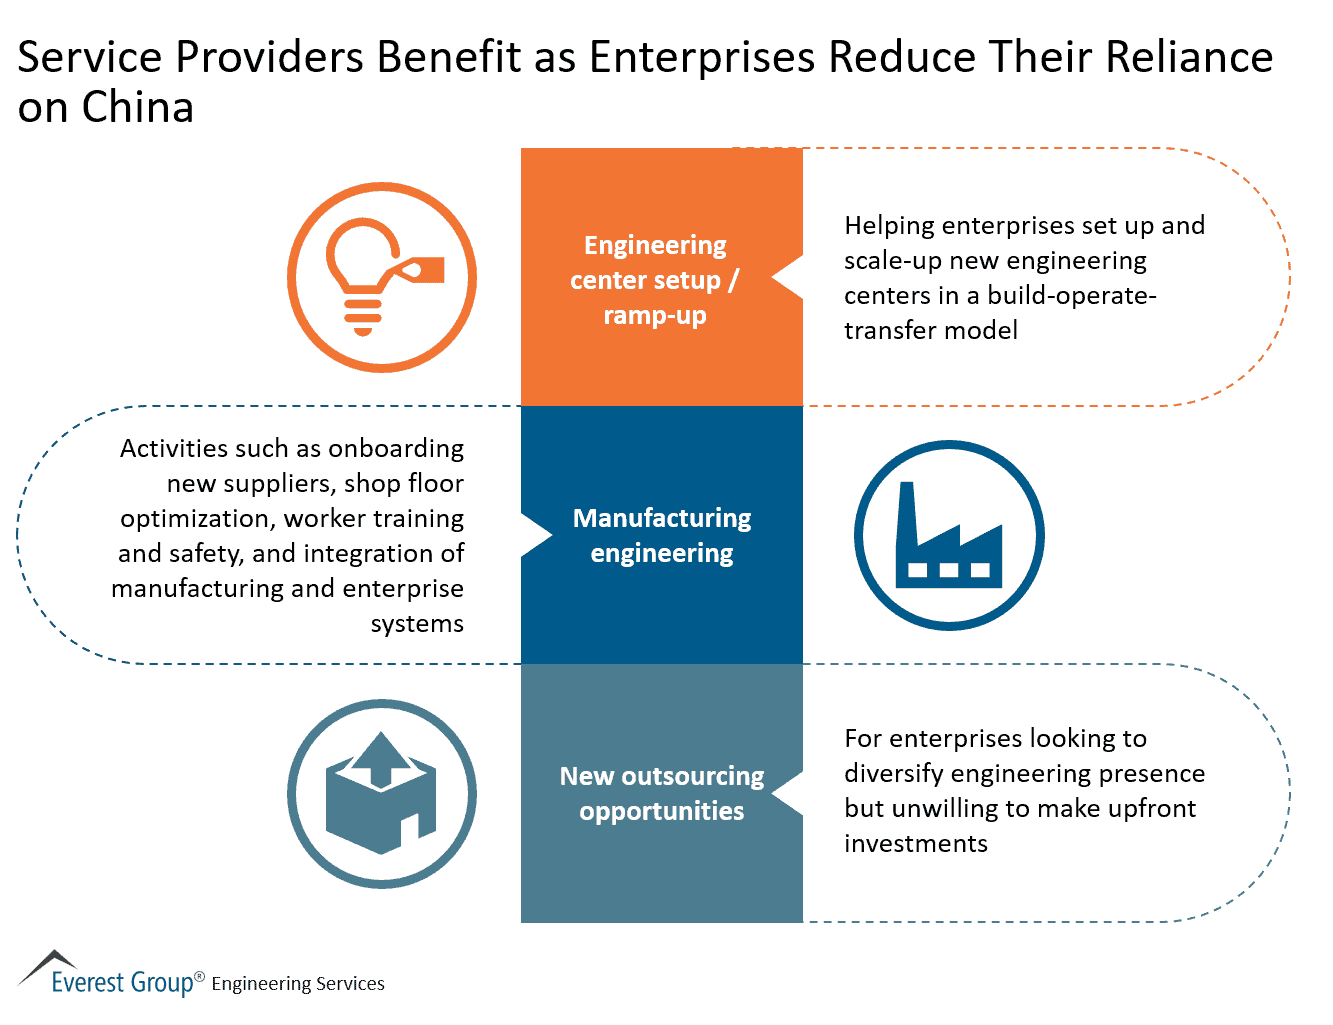 Service Providers Benefit as Enterprises Reduce Their Reliance on China